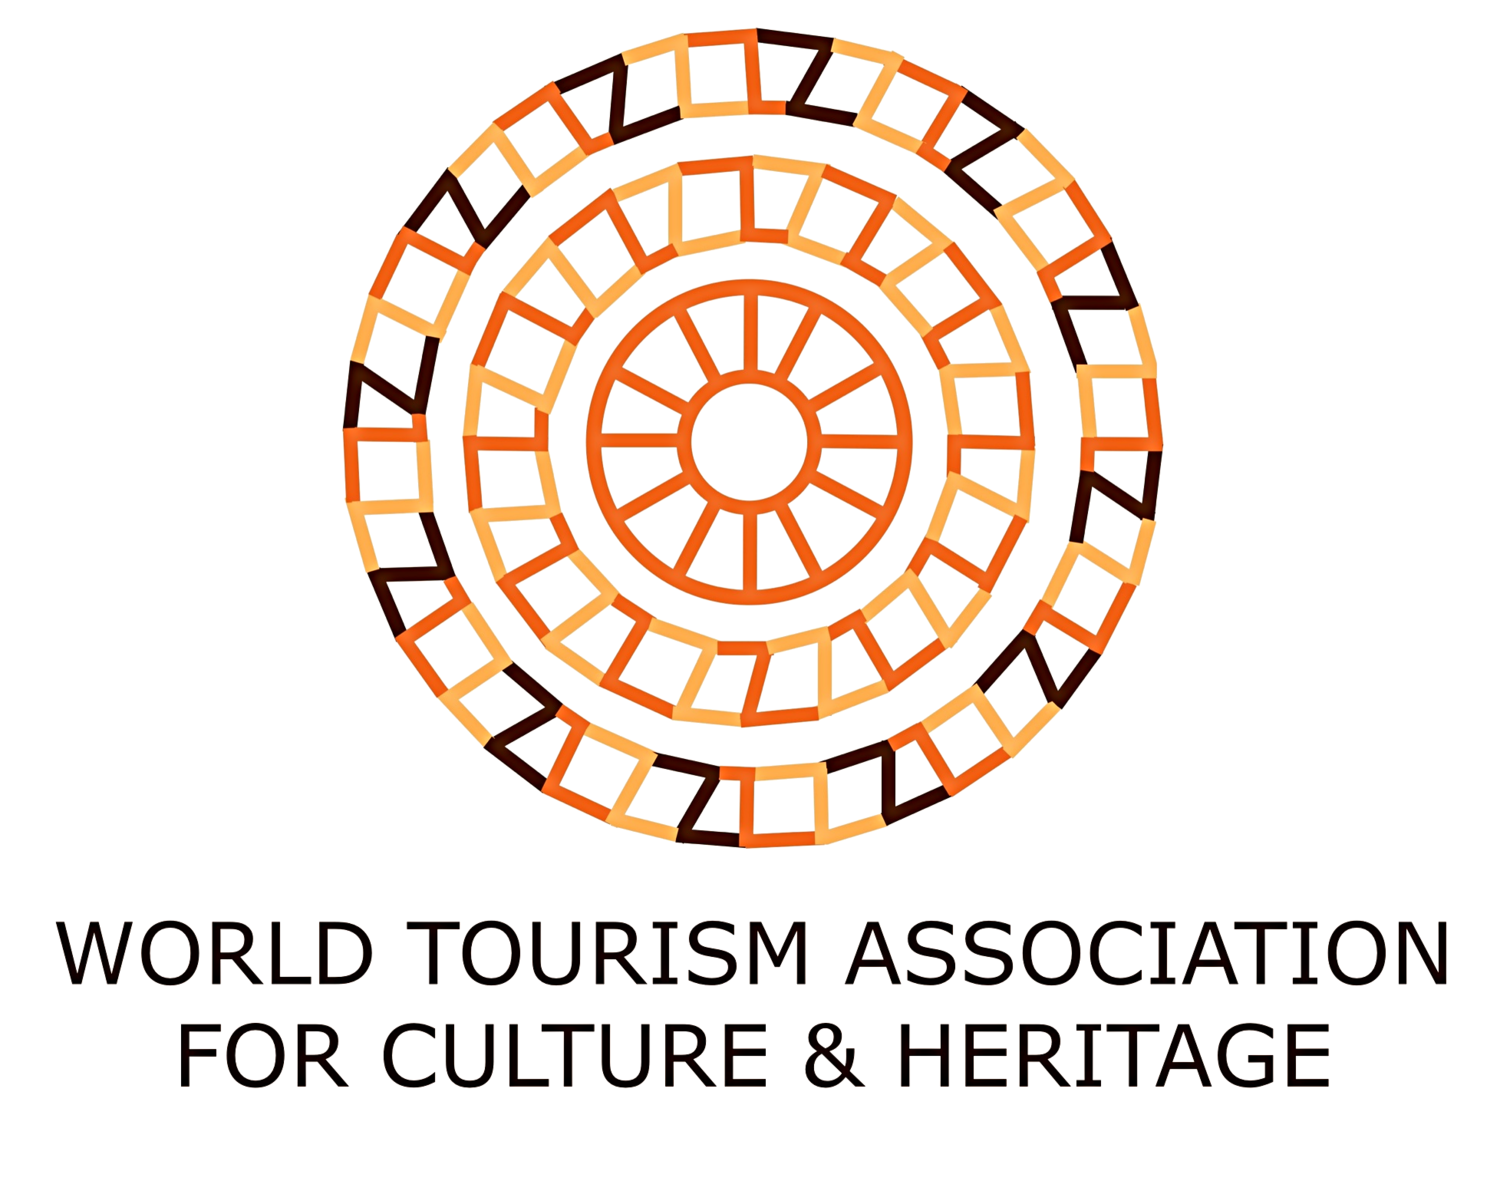 The World Tourism Association for Culture and Heritage (WTACH)